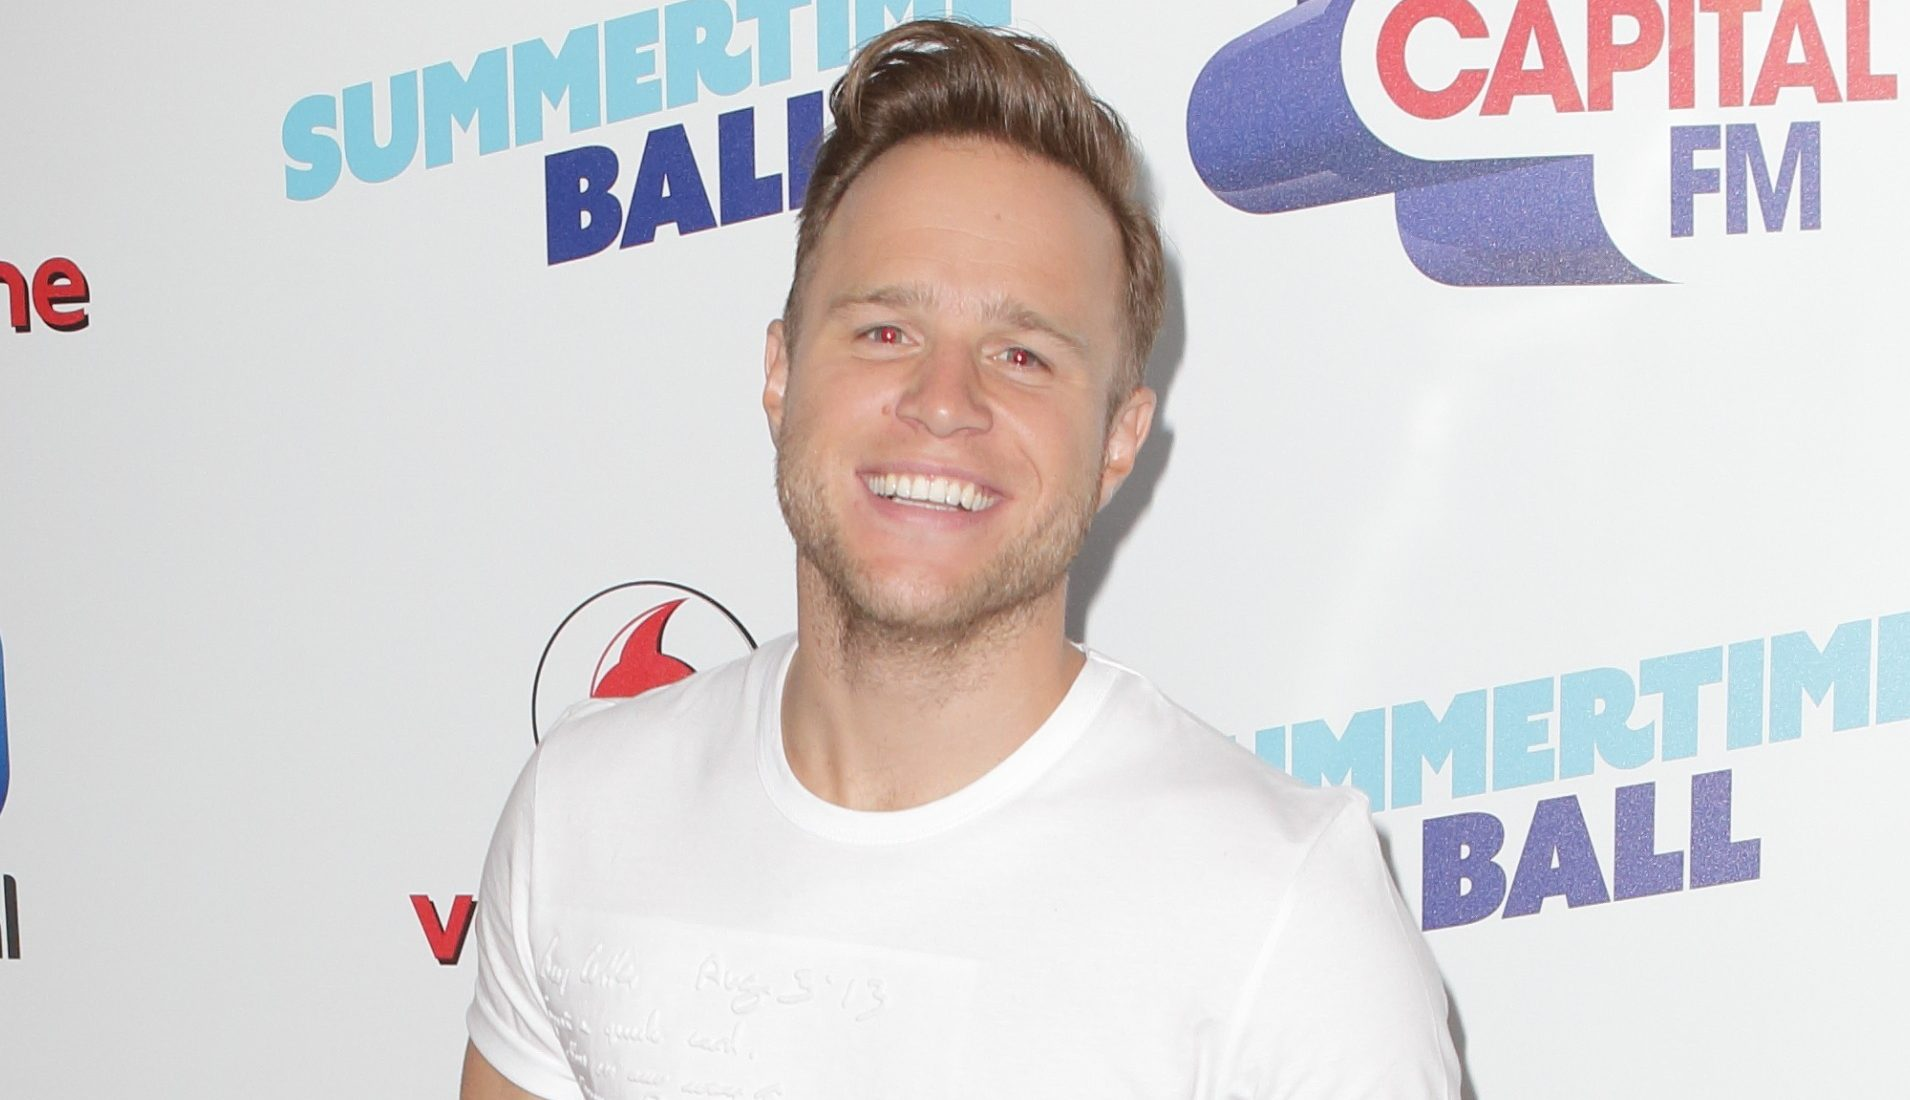 Olly Murs stuns fans posing with TV beauty in latest Instagram pic